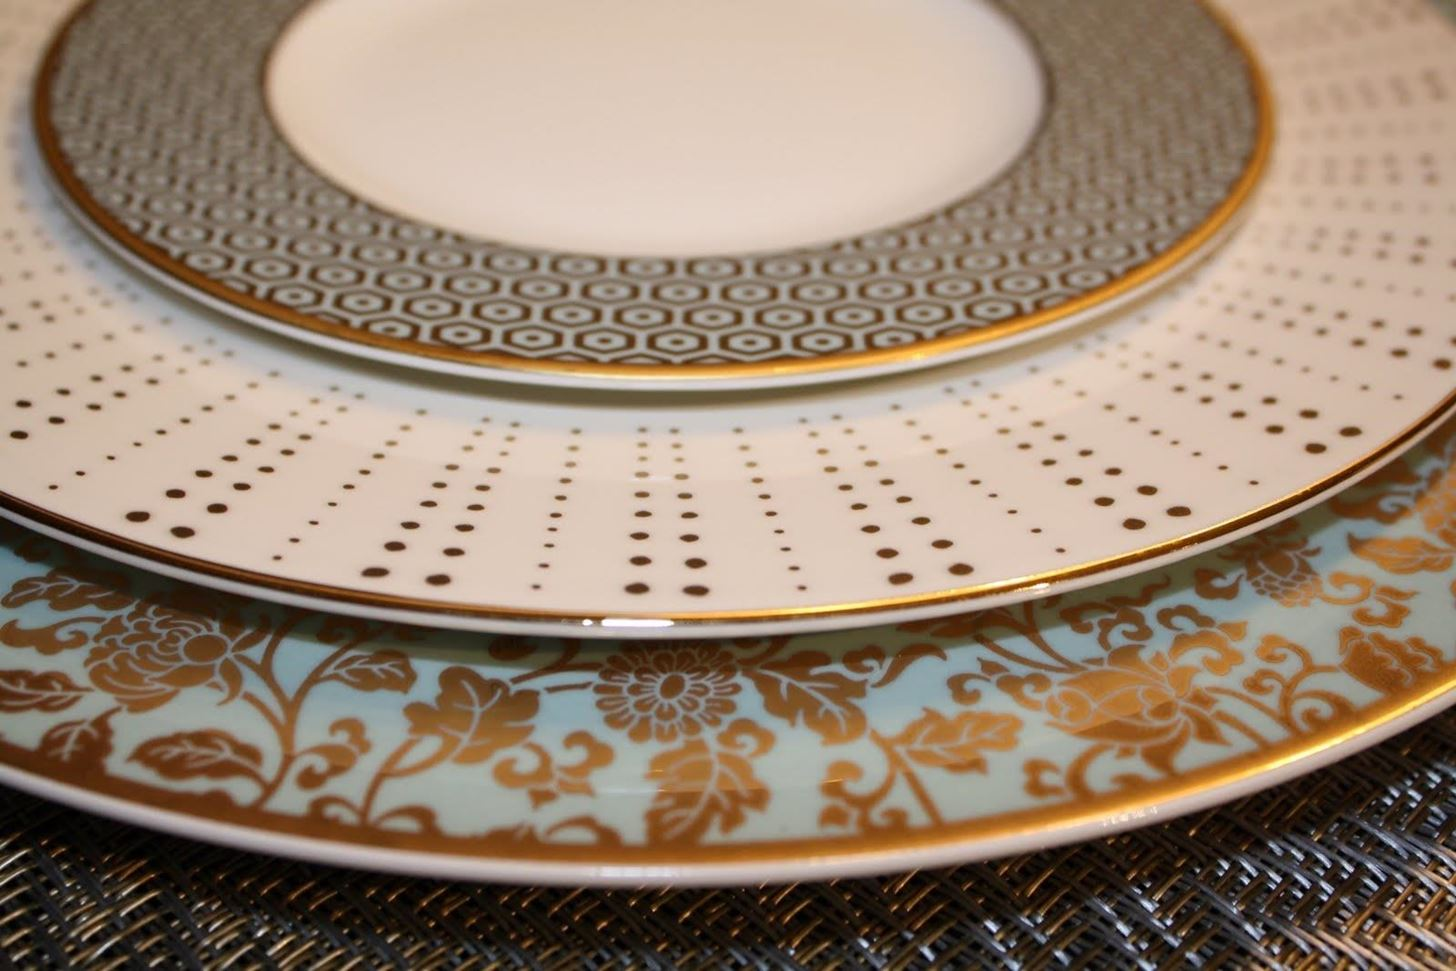 The Secret to Cleaning Scuff Marks Off Dishes & Silverware